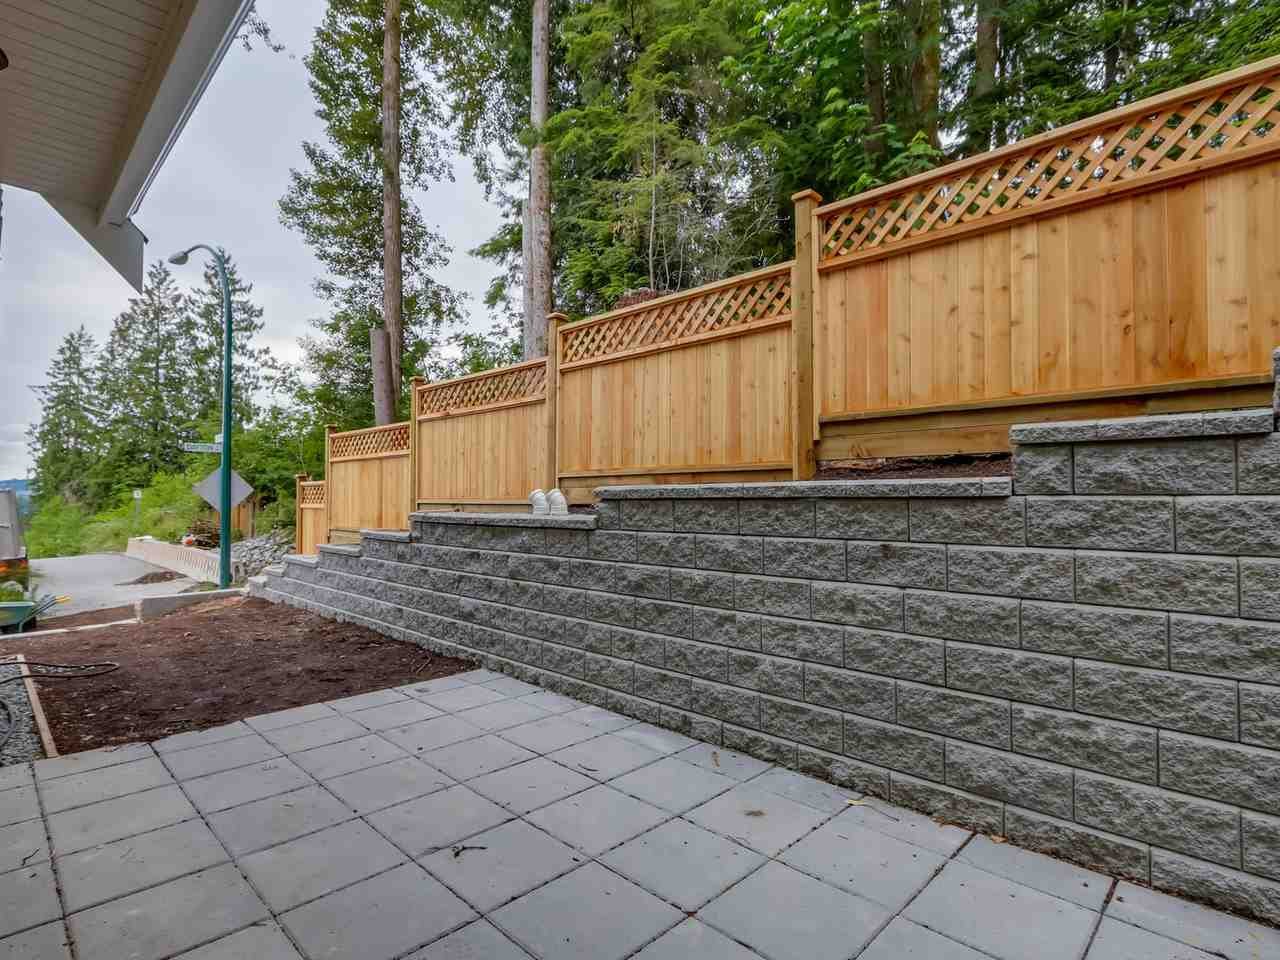 "Photo 3: 103 1405 DAYTON Street in Coquitlam: Burke Mountain Townhouse for sale in ""ERICA"" : MLS® # R2123284"